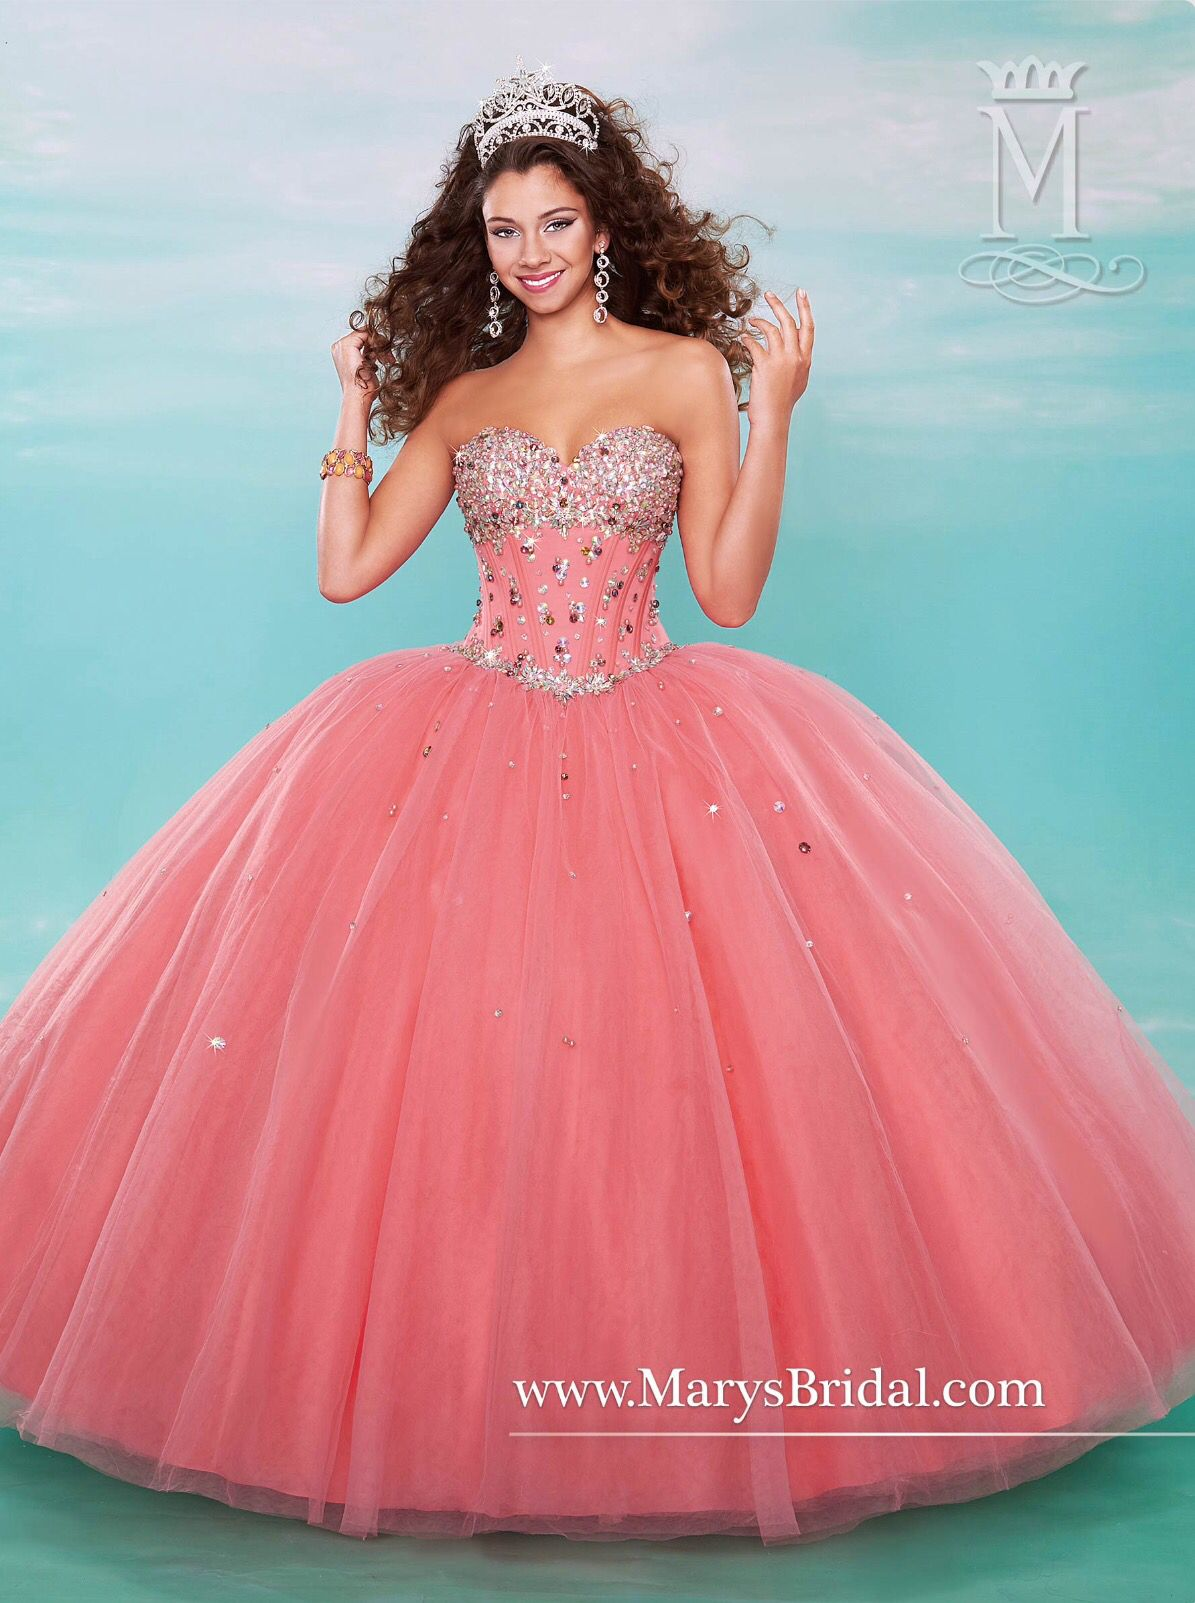 Light peach or light pink or coral | Quinceanera | Pinterest